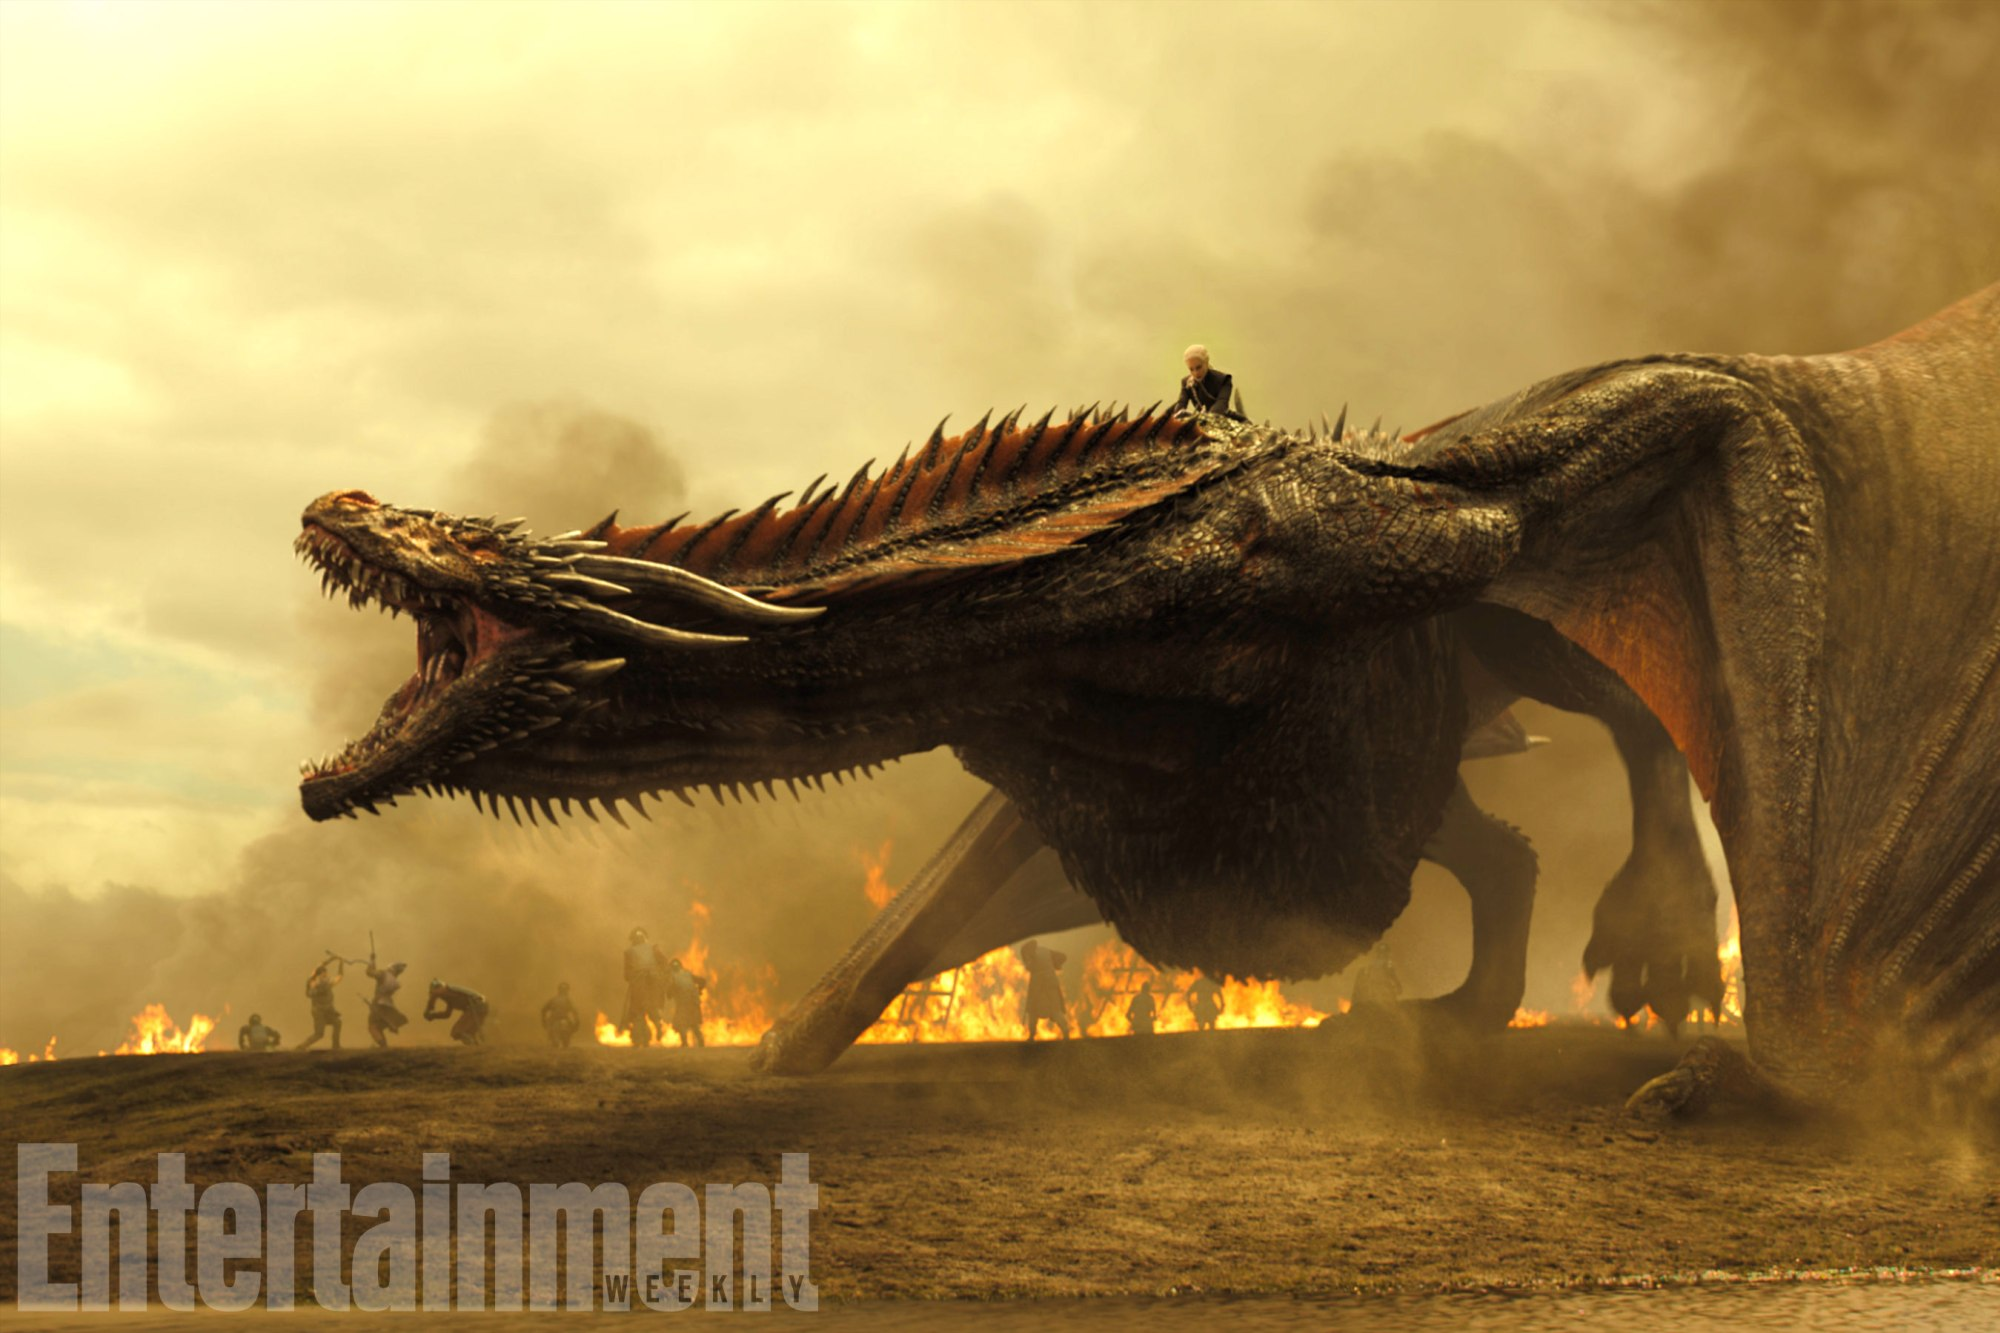 Emilia Clark as Daenerys Targaryen on Drogon, in a battlefield